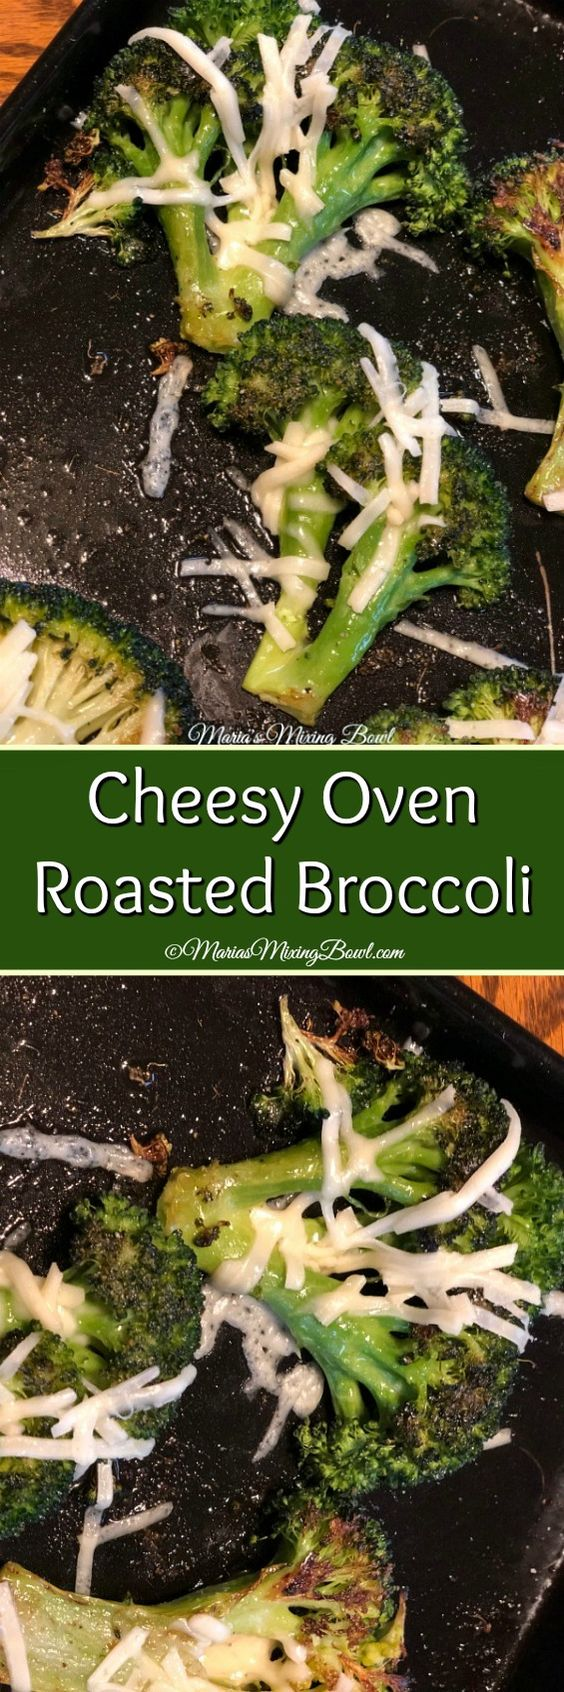 Cheesy Oven Roasted Broccoli is our favorite way to make broccoli. Oven roasted broccoli has so much flavor. Then add some flavorful cheese and you have a winner!